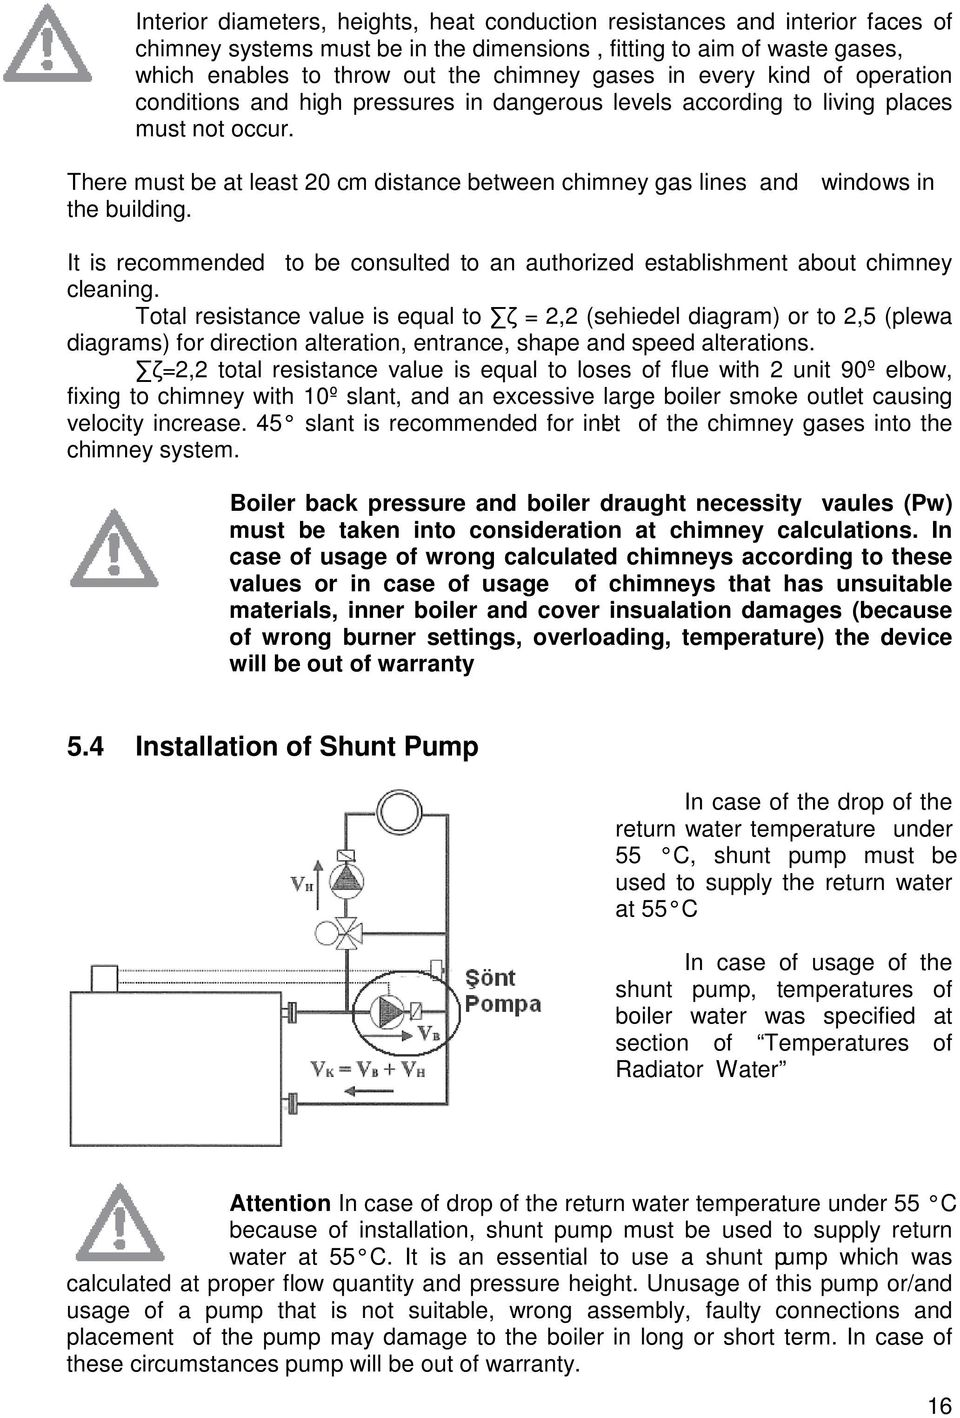 Troy Back Pressure Boiler Instructions For Installation And Washer Burner Wiring Diagram There Must Be At Least 20 Cm Distance Between Chimney Gas Lines Windows In The